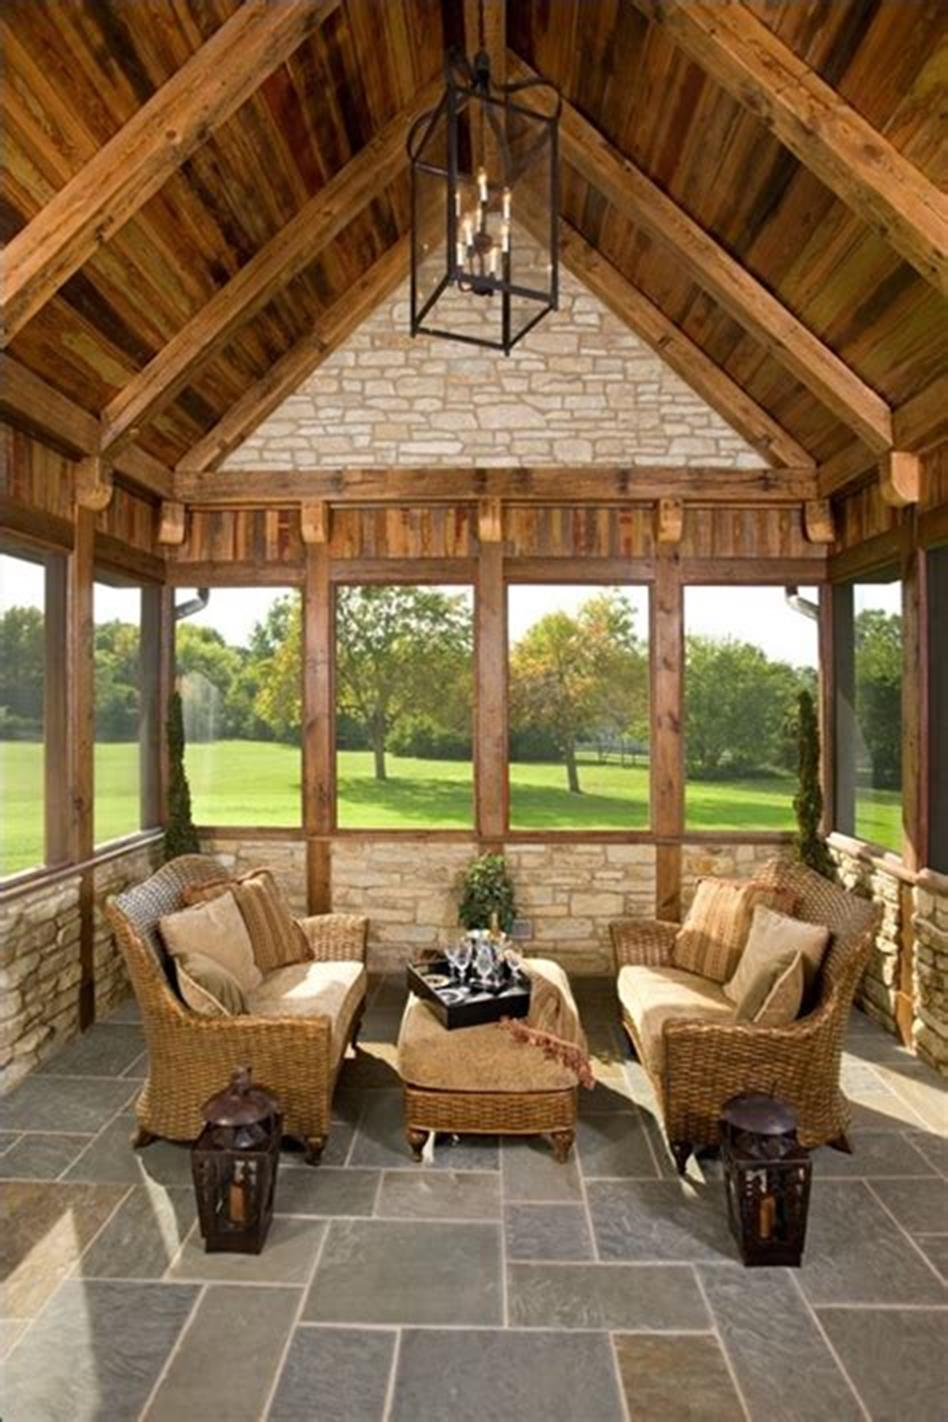 50 Most Popular Affordable Sunroom Design Ideas on a Budget 35